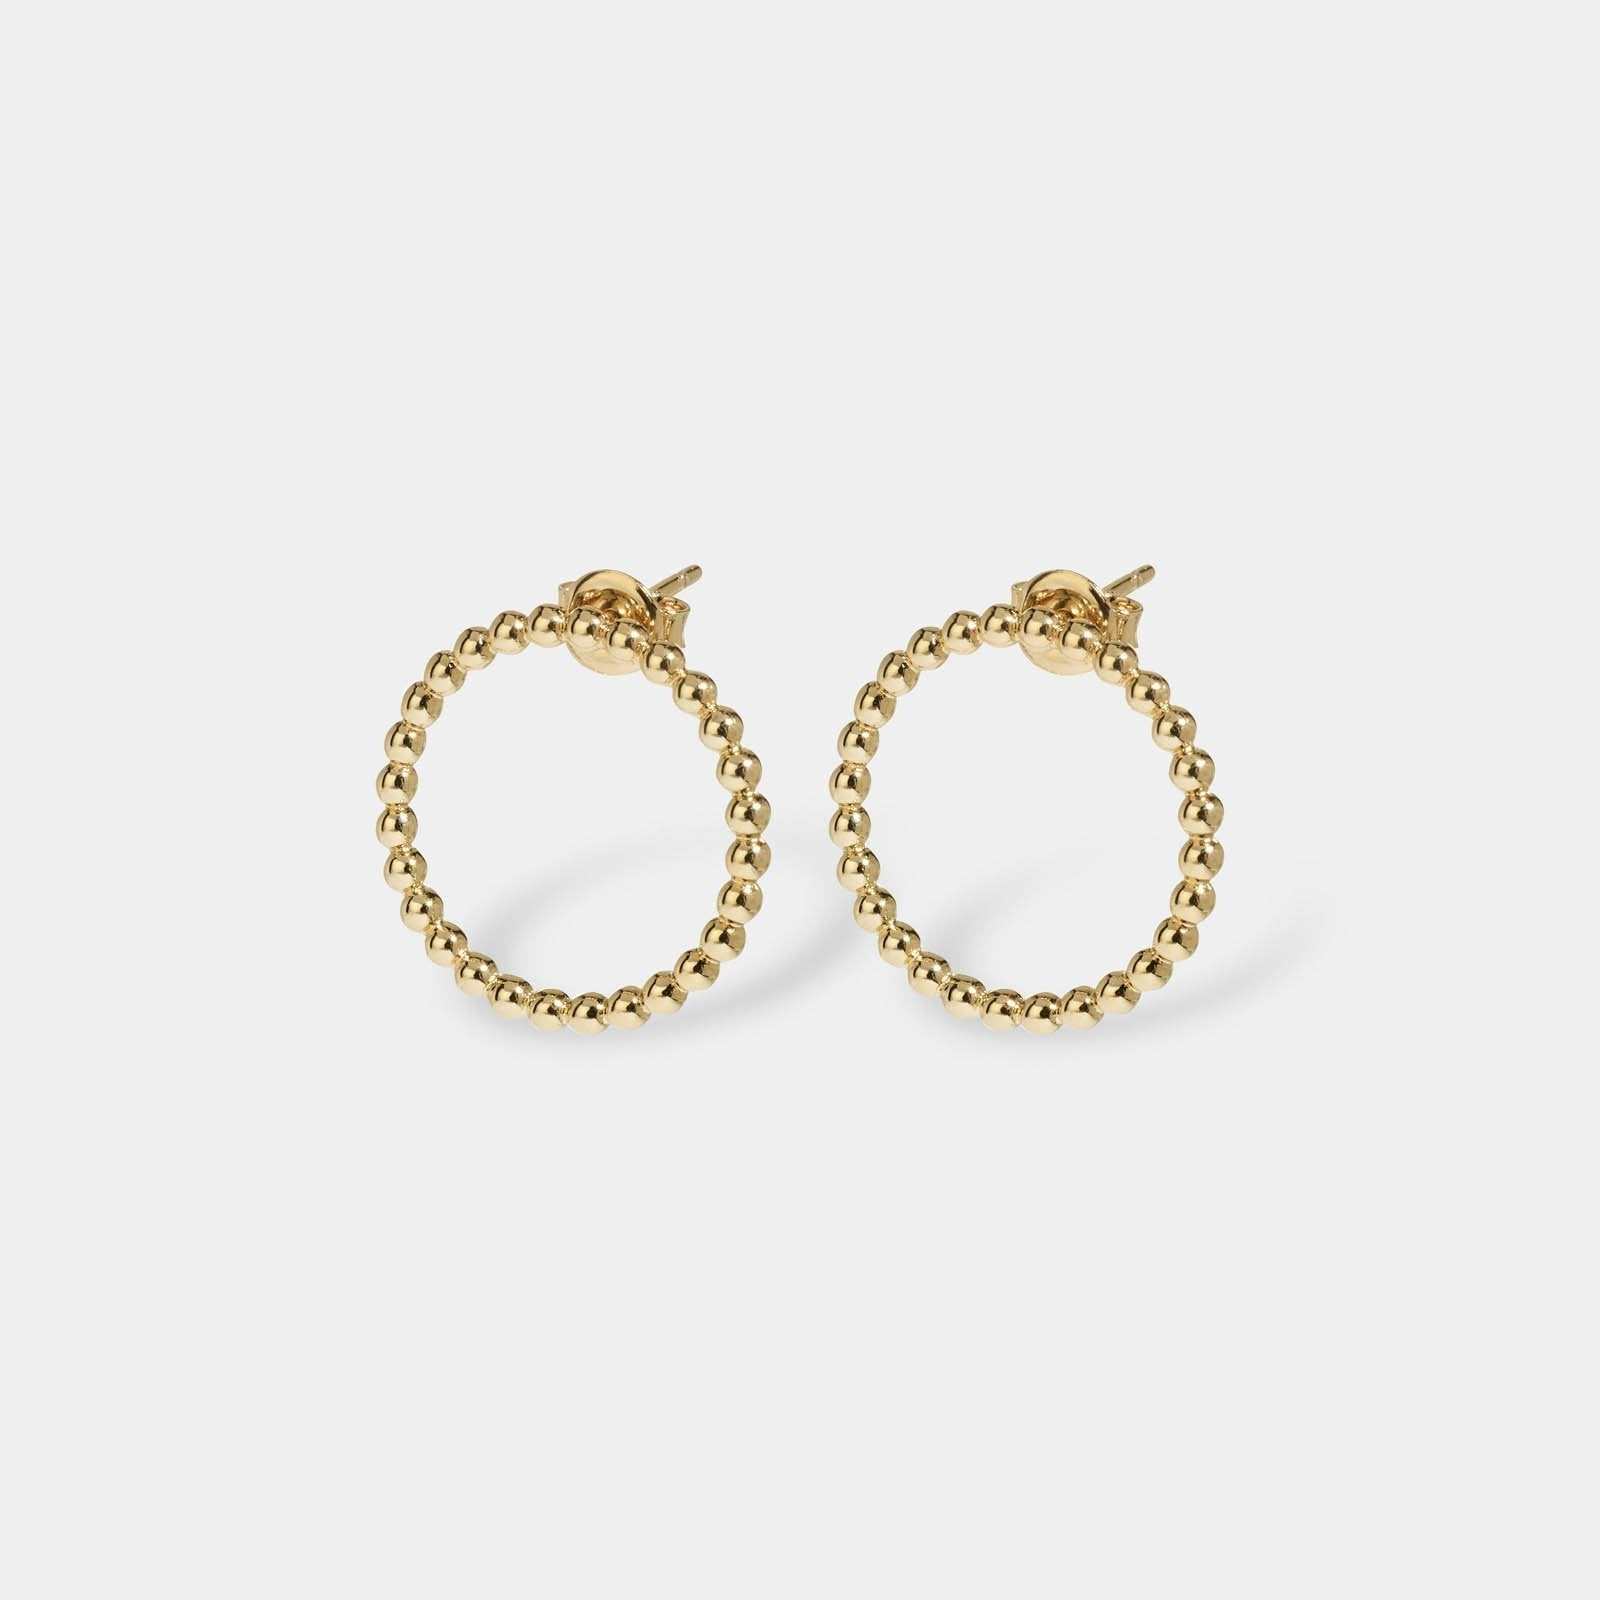 Essentielle Gold Open Circle Embellished Stud Earrings CLJ51007 - Orecchini-